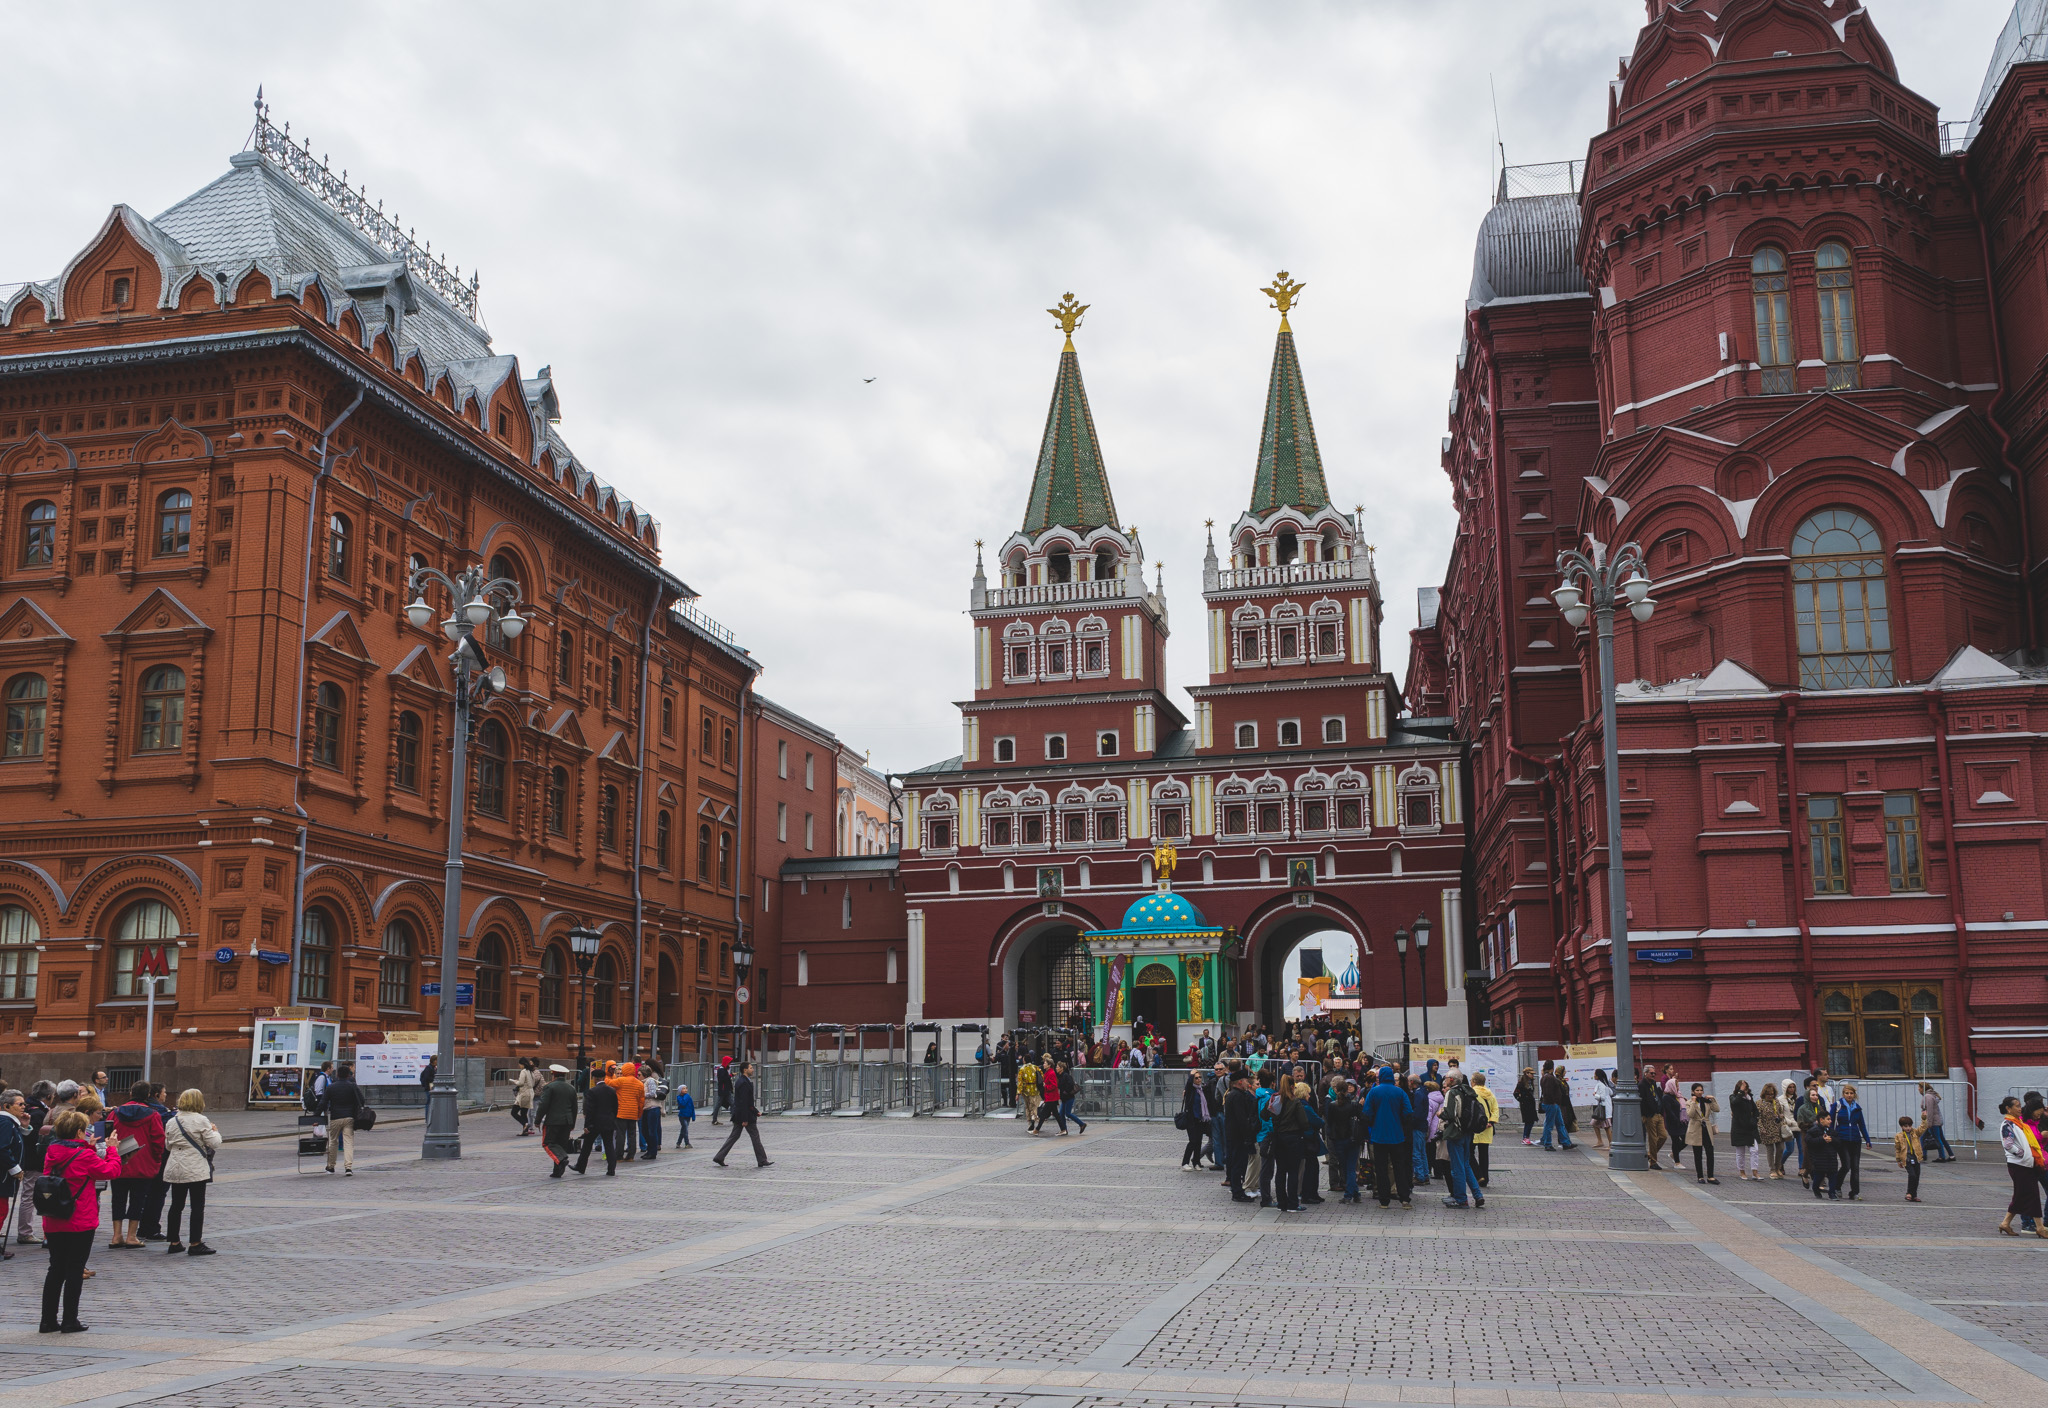 Entrance to the Red Square